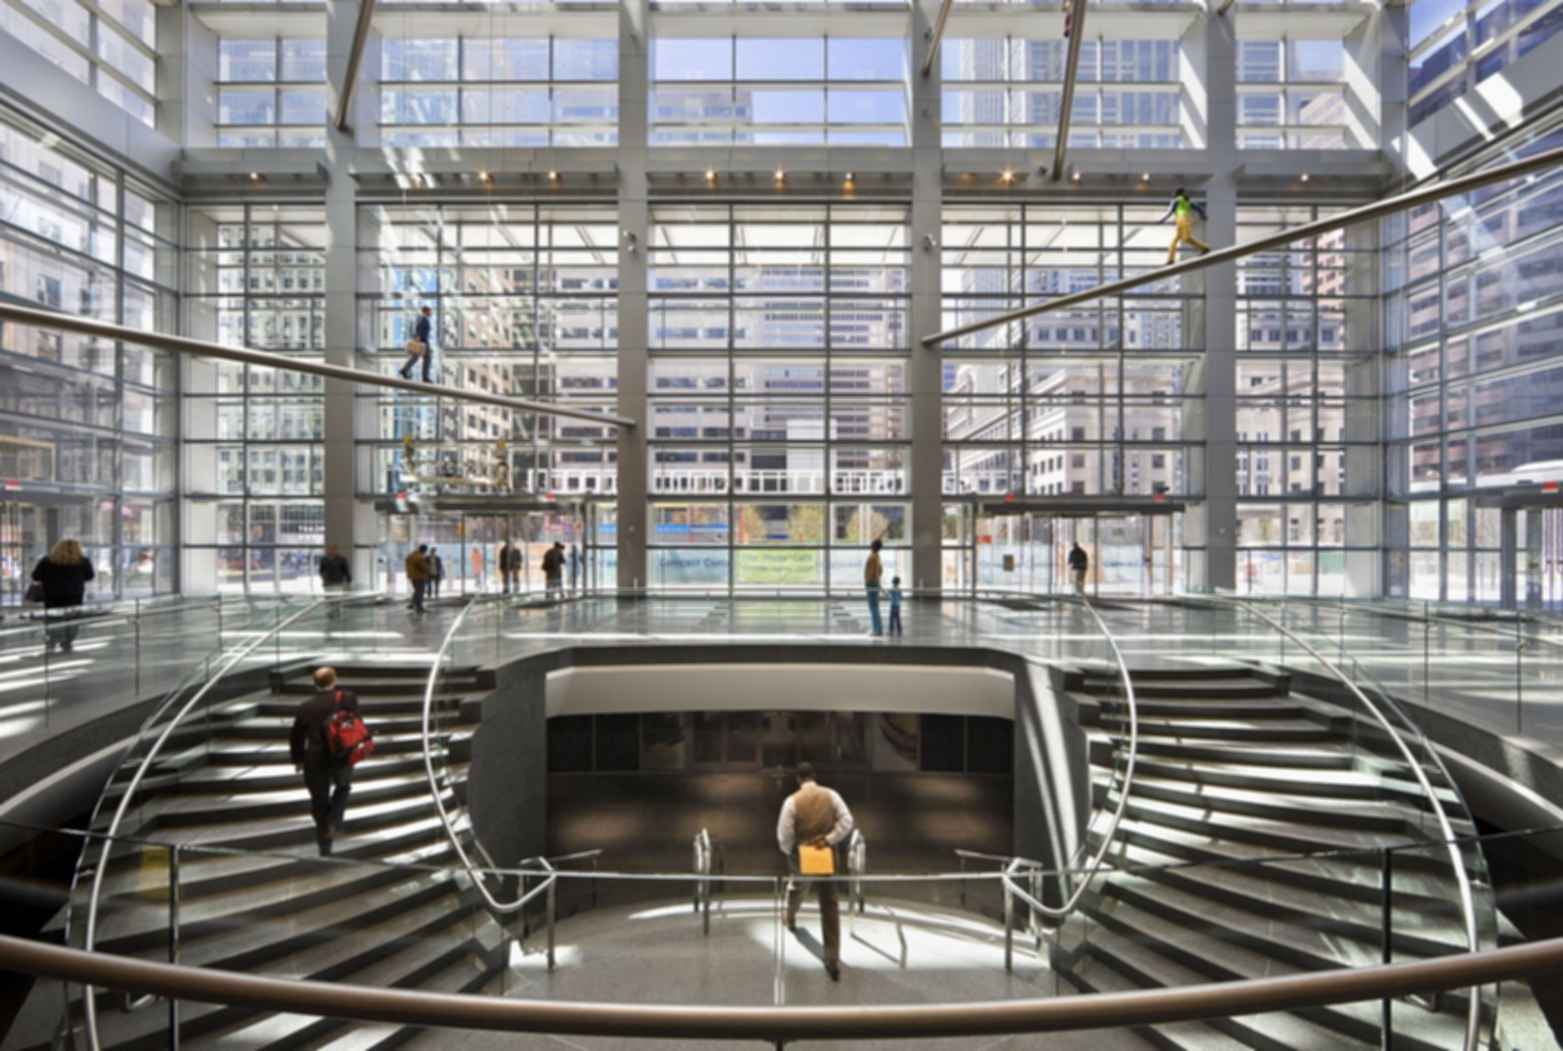 Comcast Center - Interior/Entrance